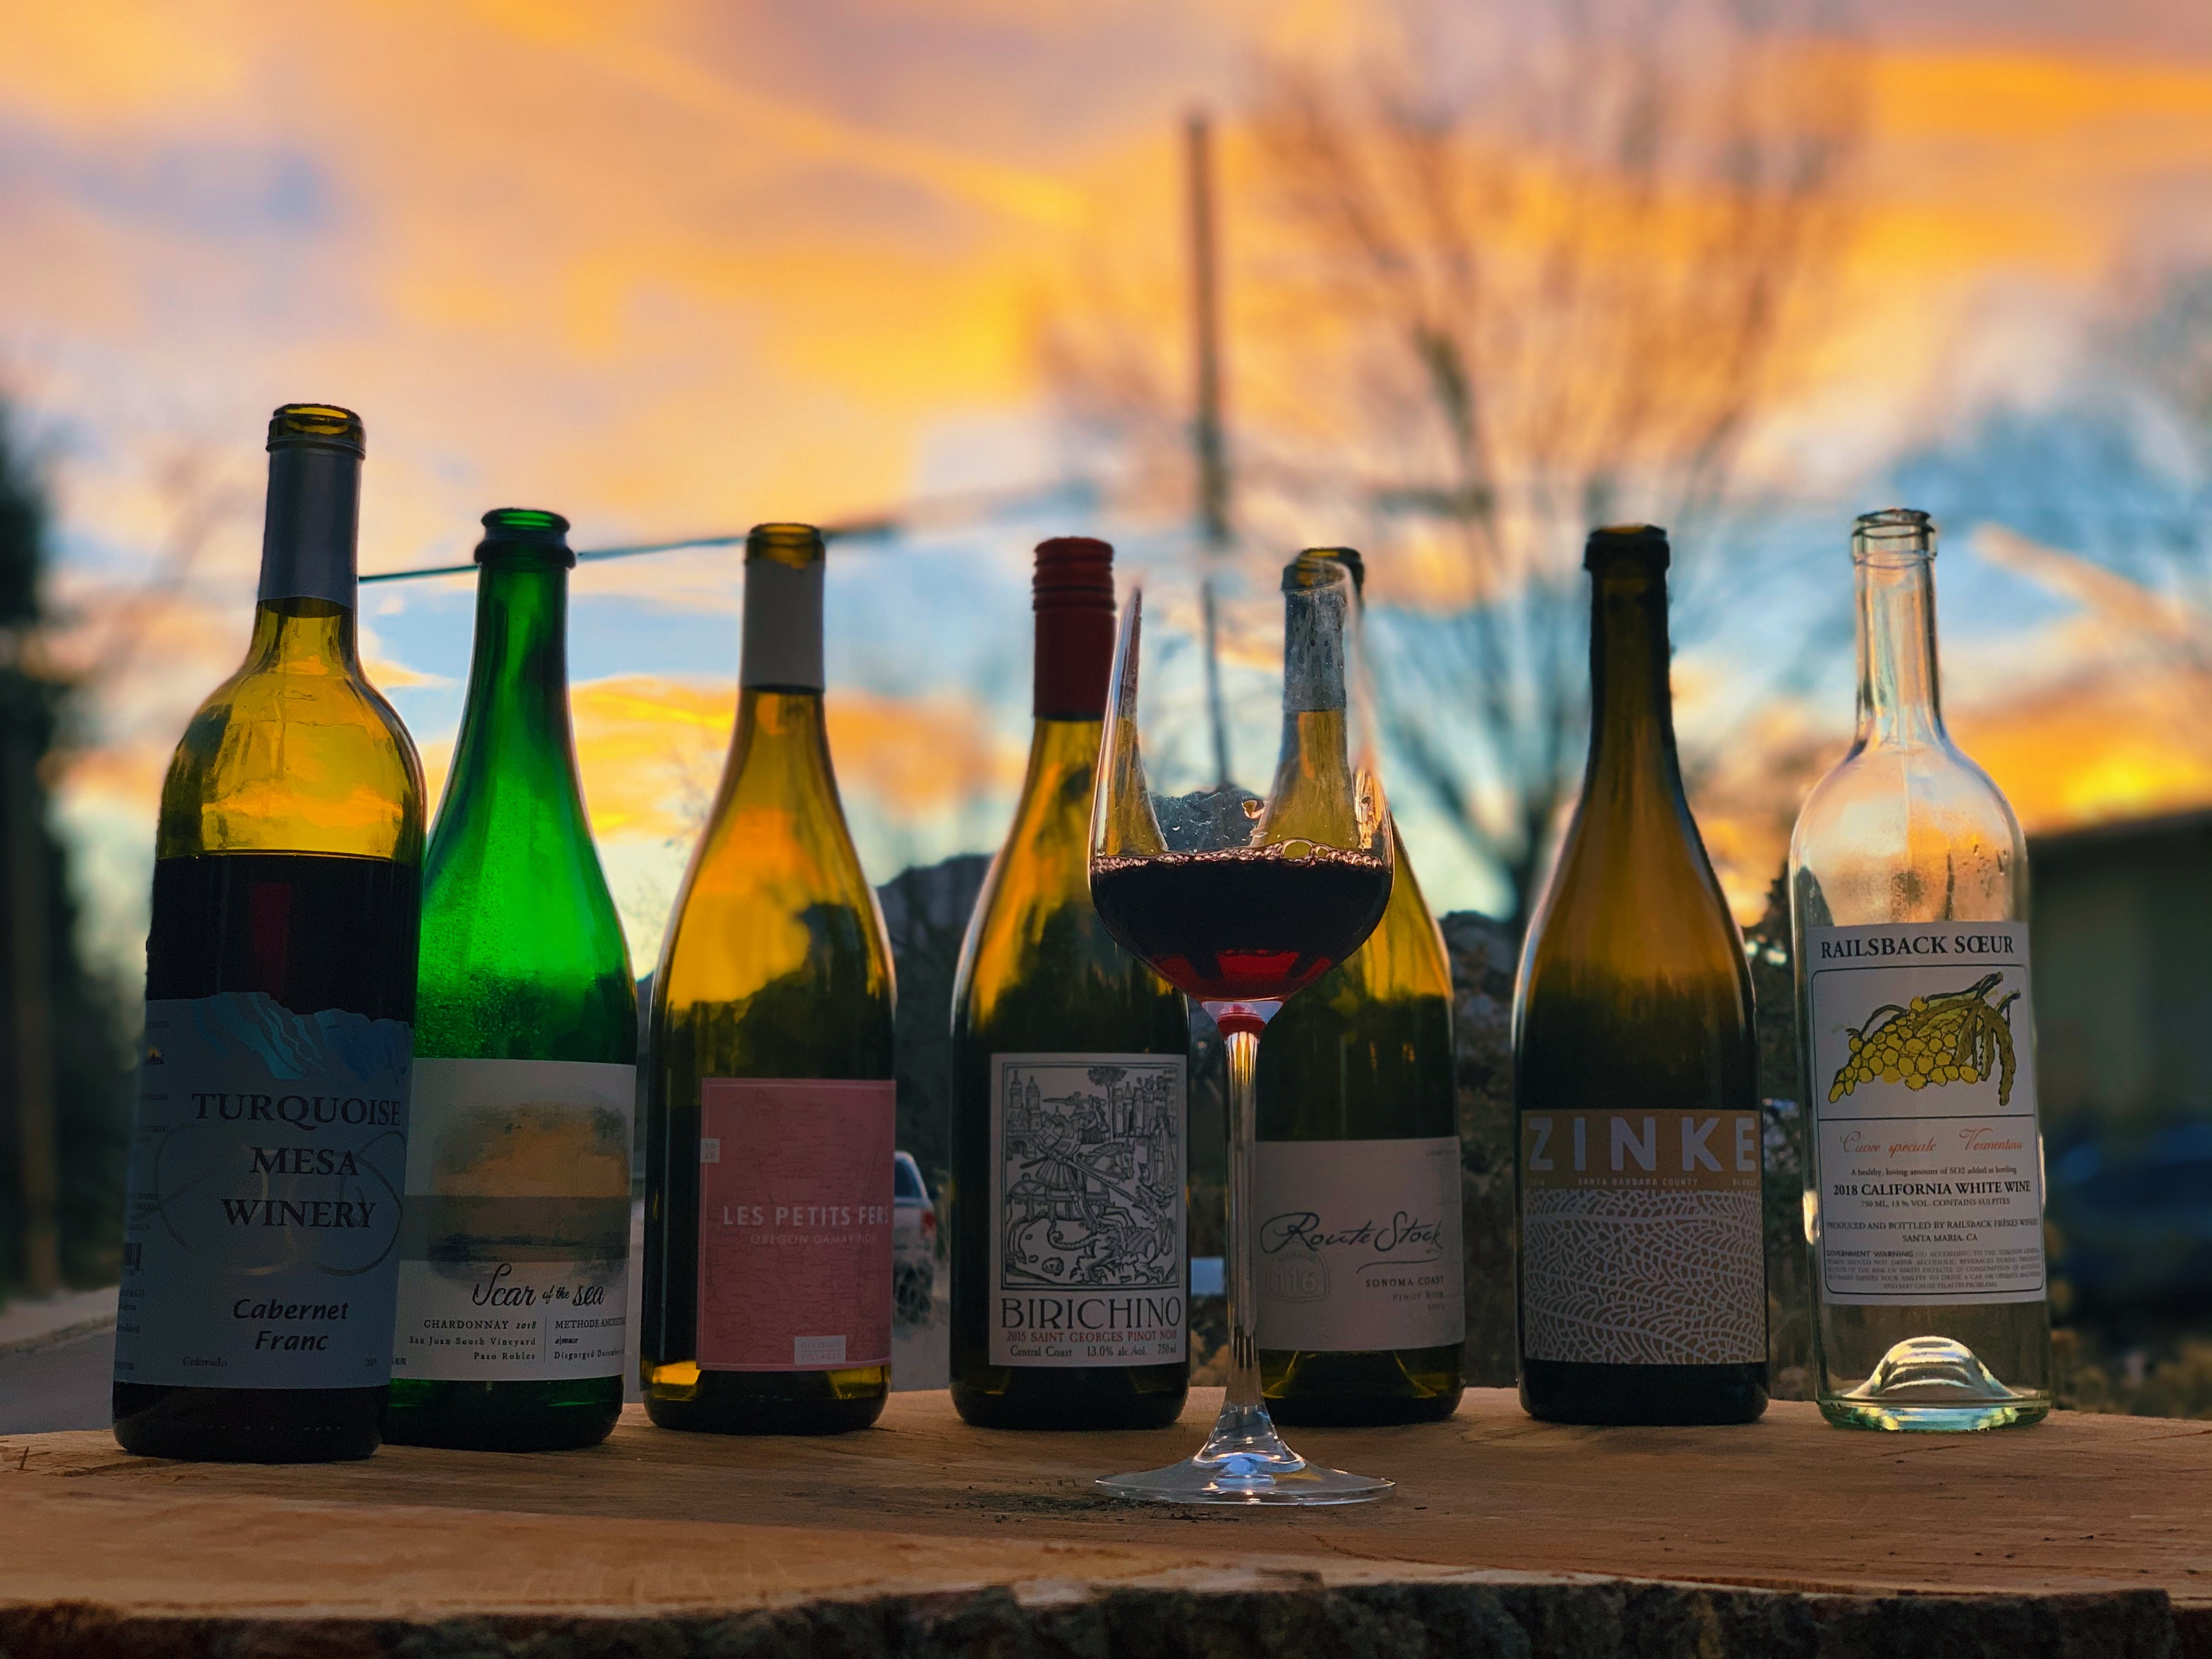 Thanksgiving wines need acid to cut fat and not too much concentrated flavor